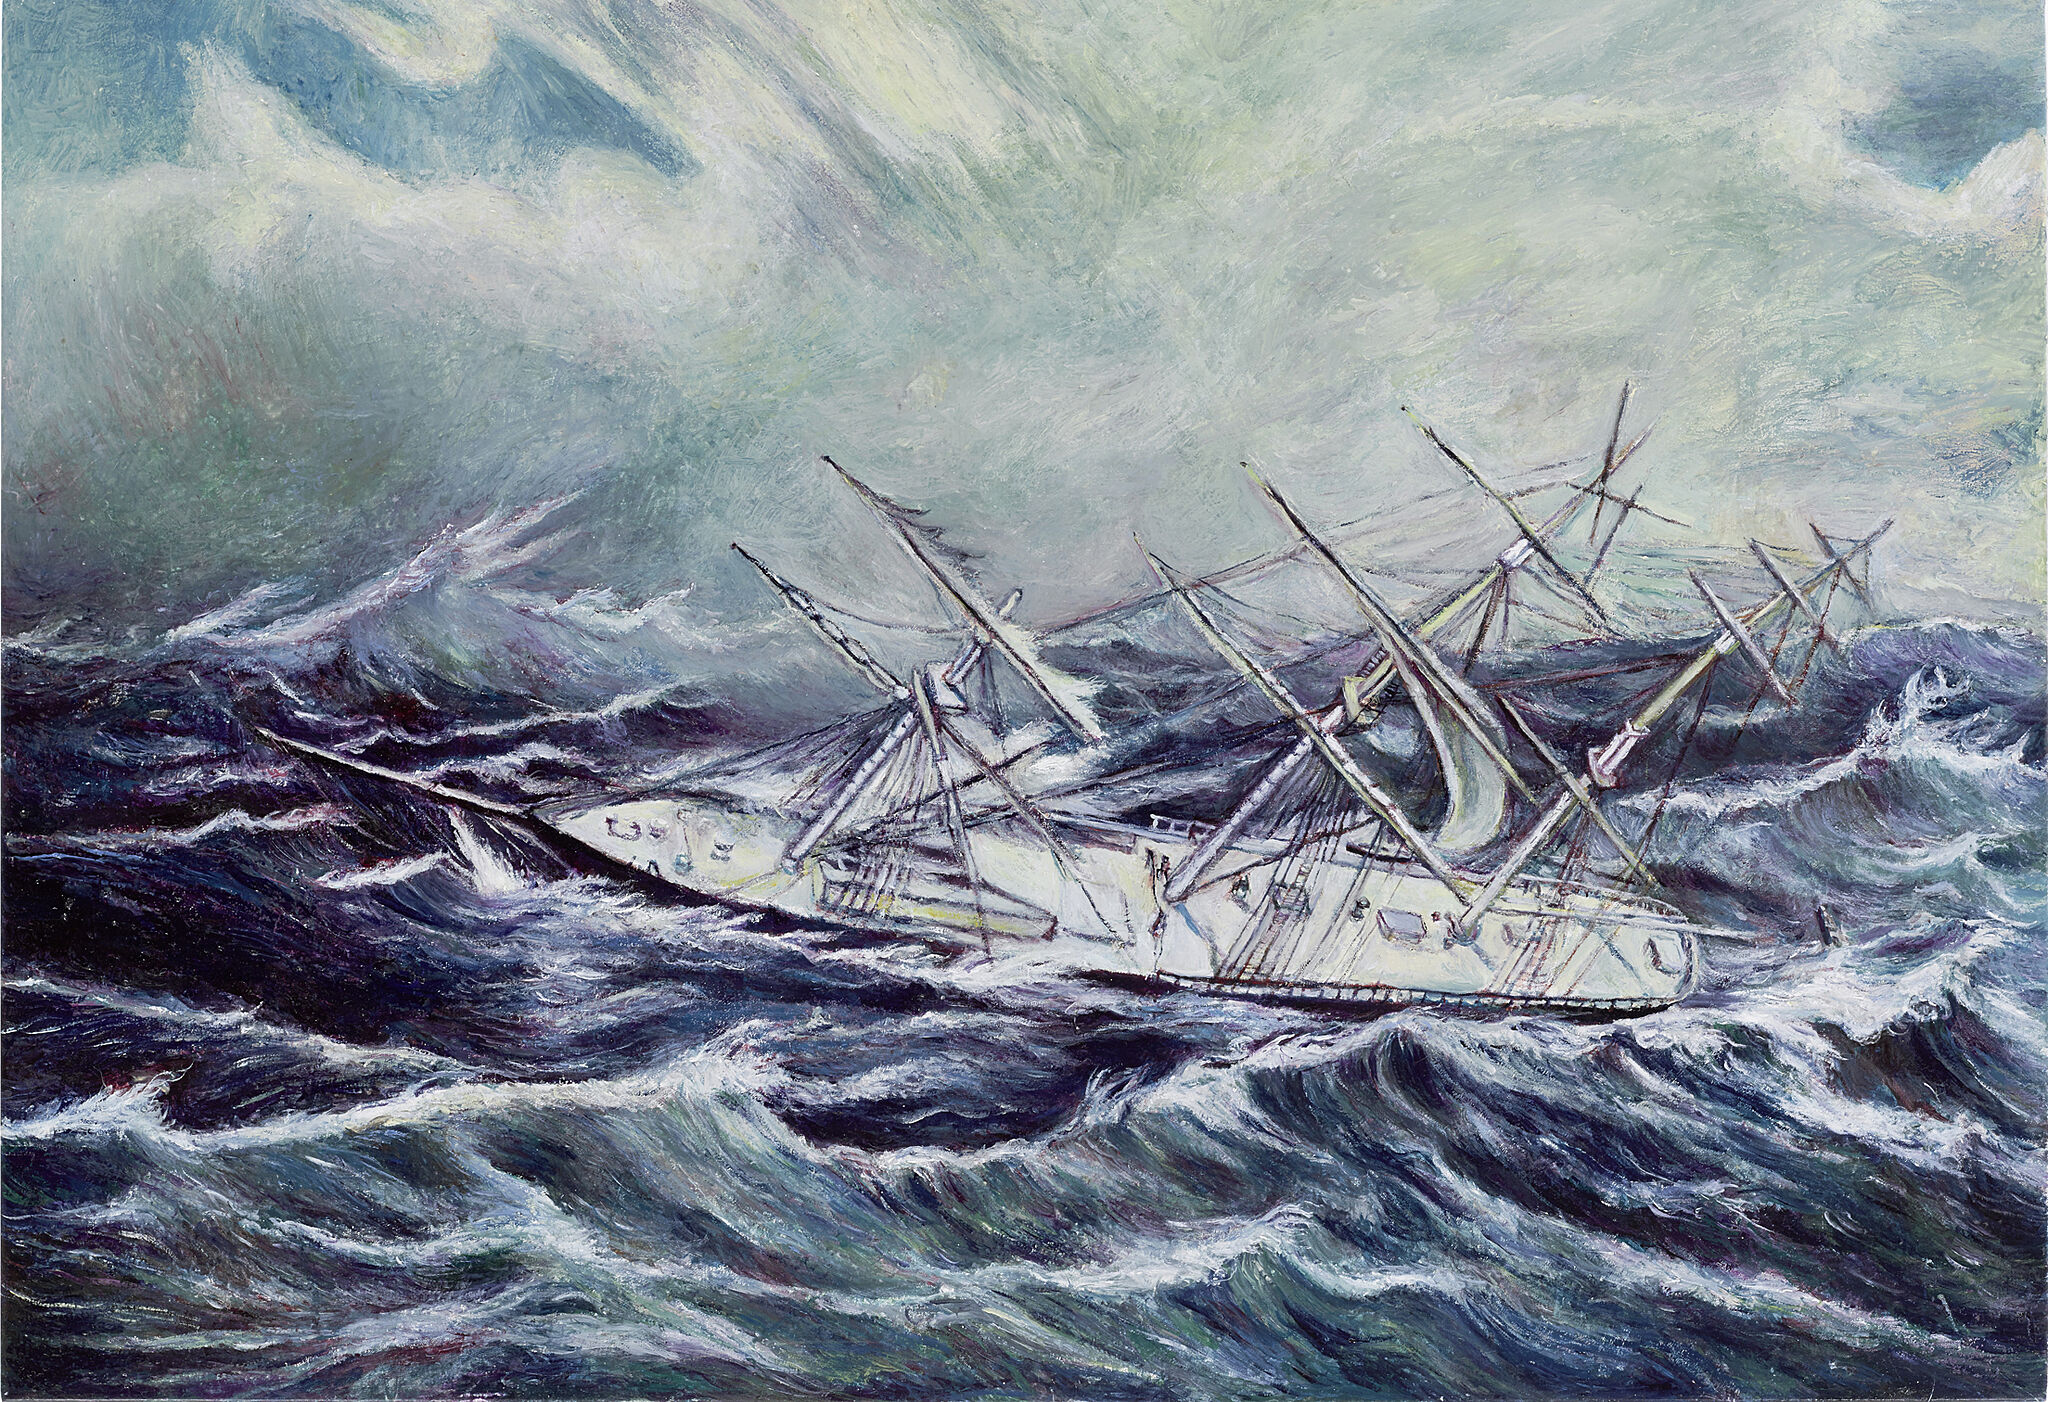 A painting of a boat on a rolling sea.